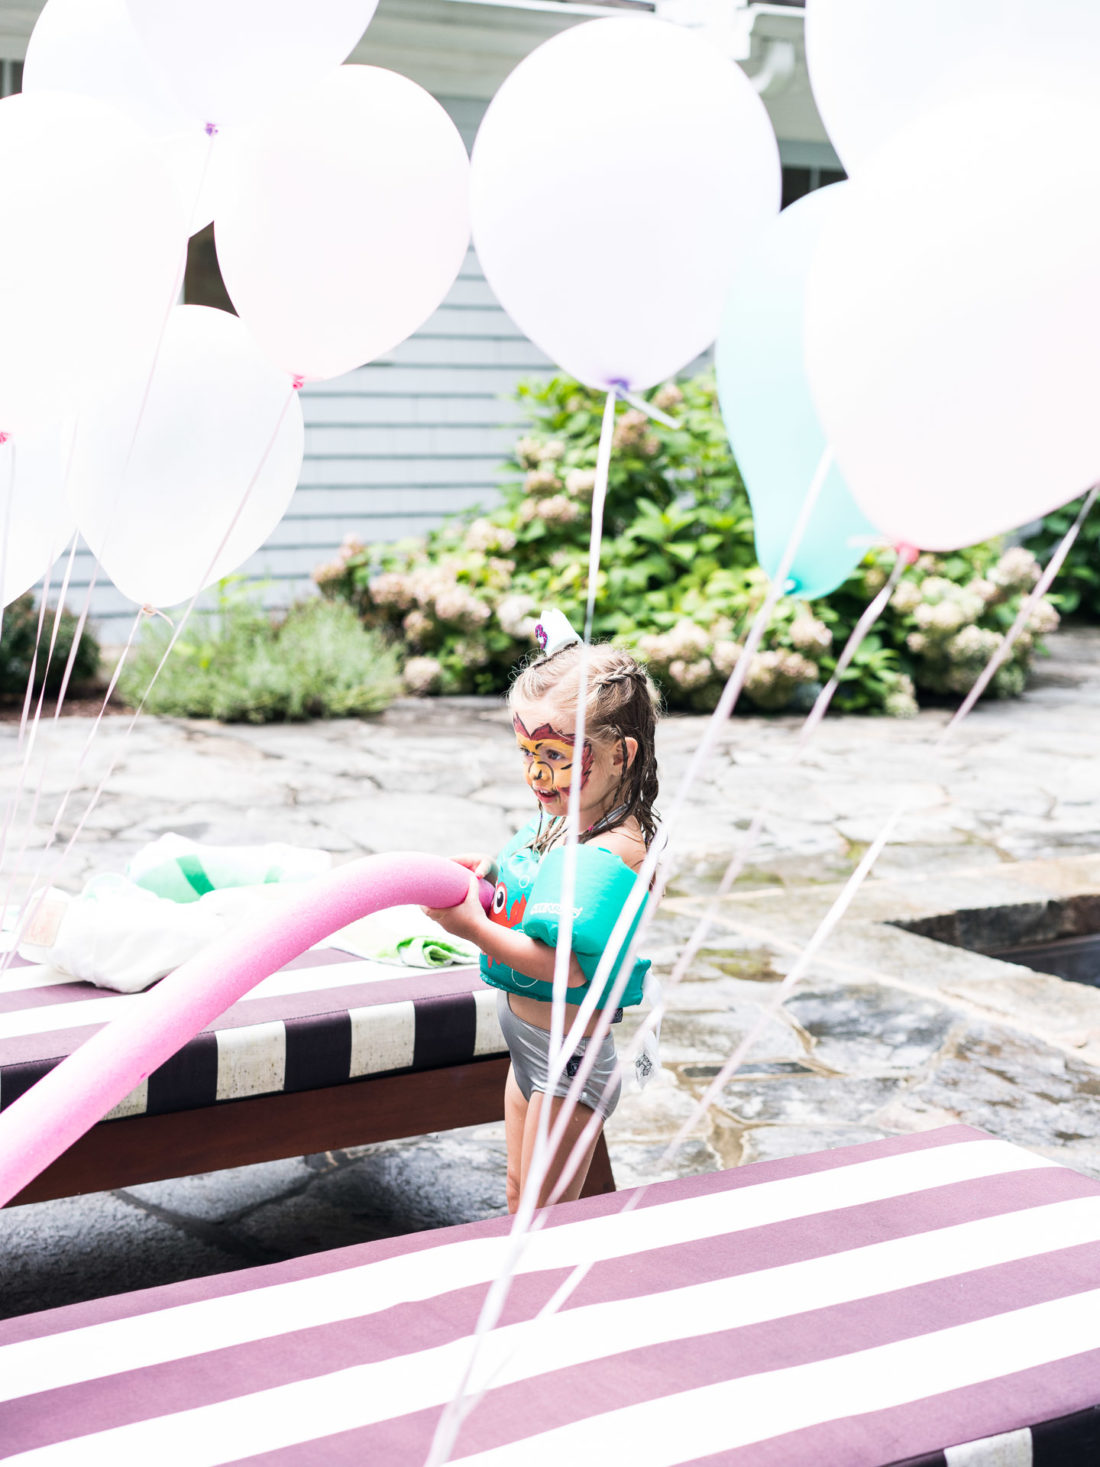 Marlowe Martino plays by the pool at her third birthday party